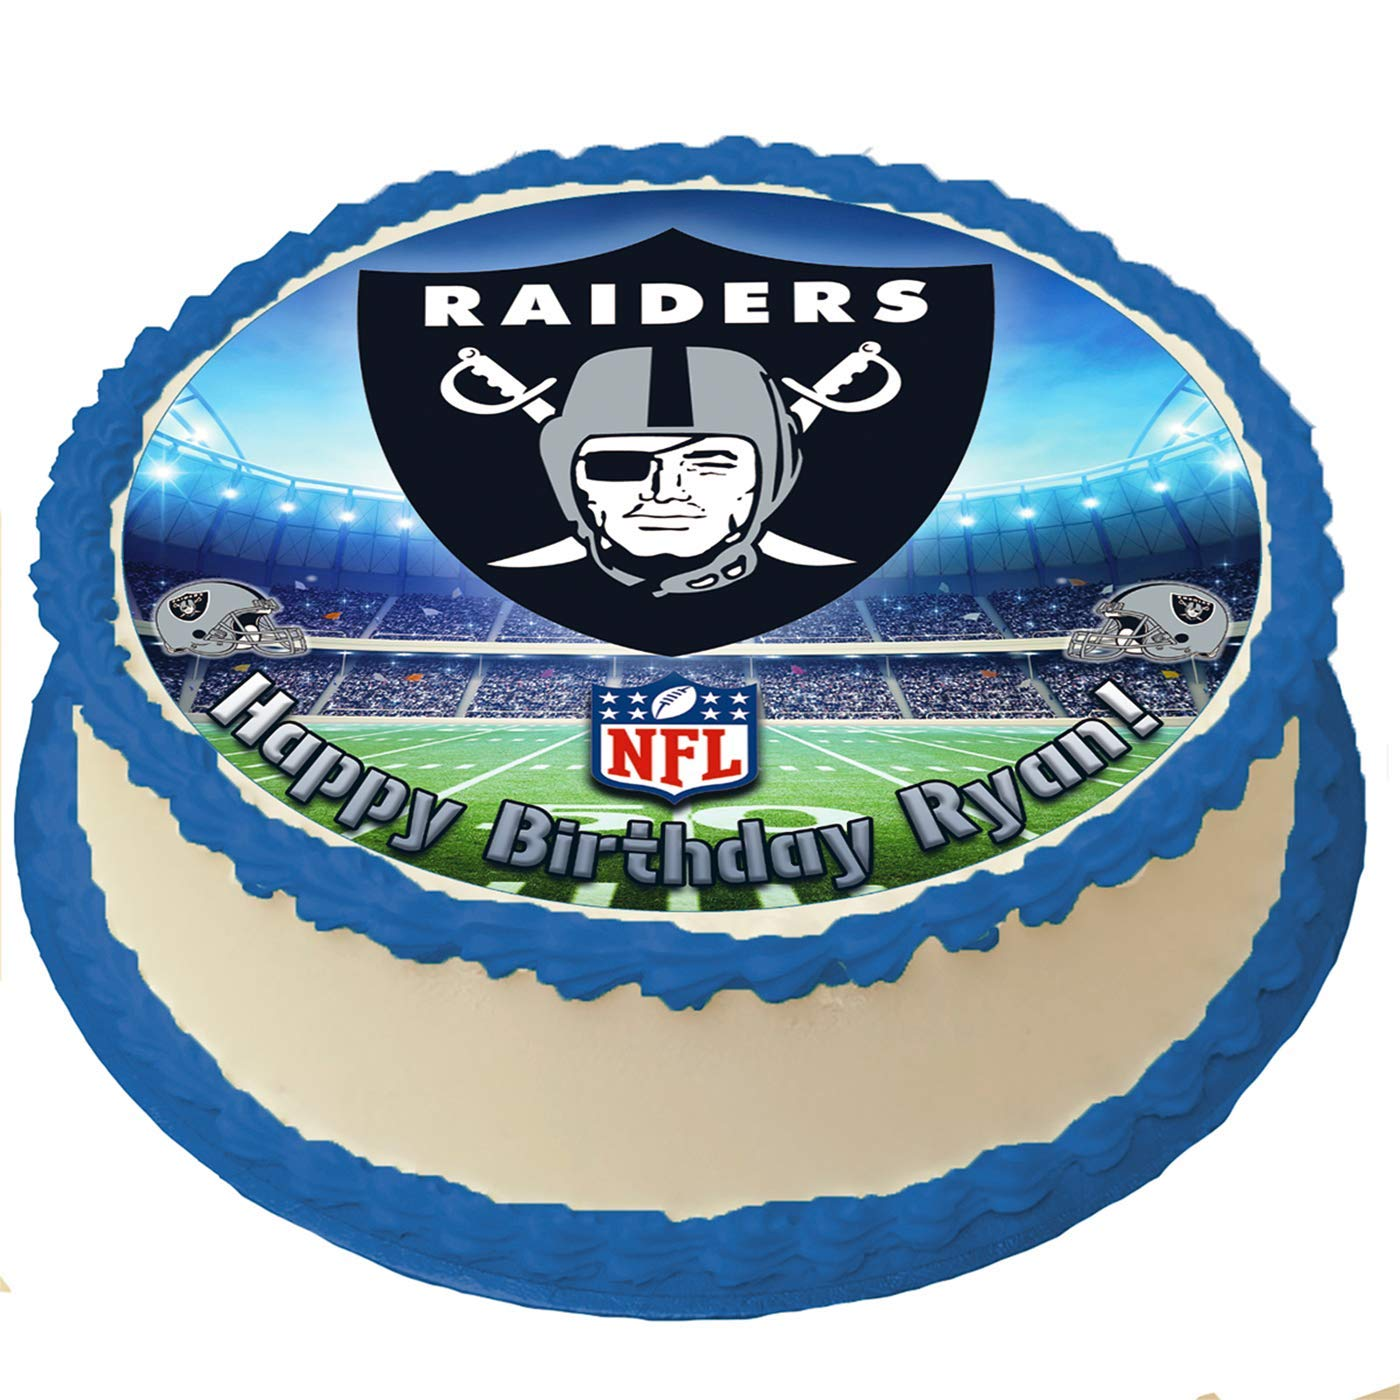 Oakland Raiders Nfl Personalized Cake Topper Icing Sugar Paper 8 Inches Round Sheet Edible Frosting Photo Birthday Cake Topper Amazon Com Grocery Gourmet Food